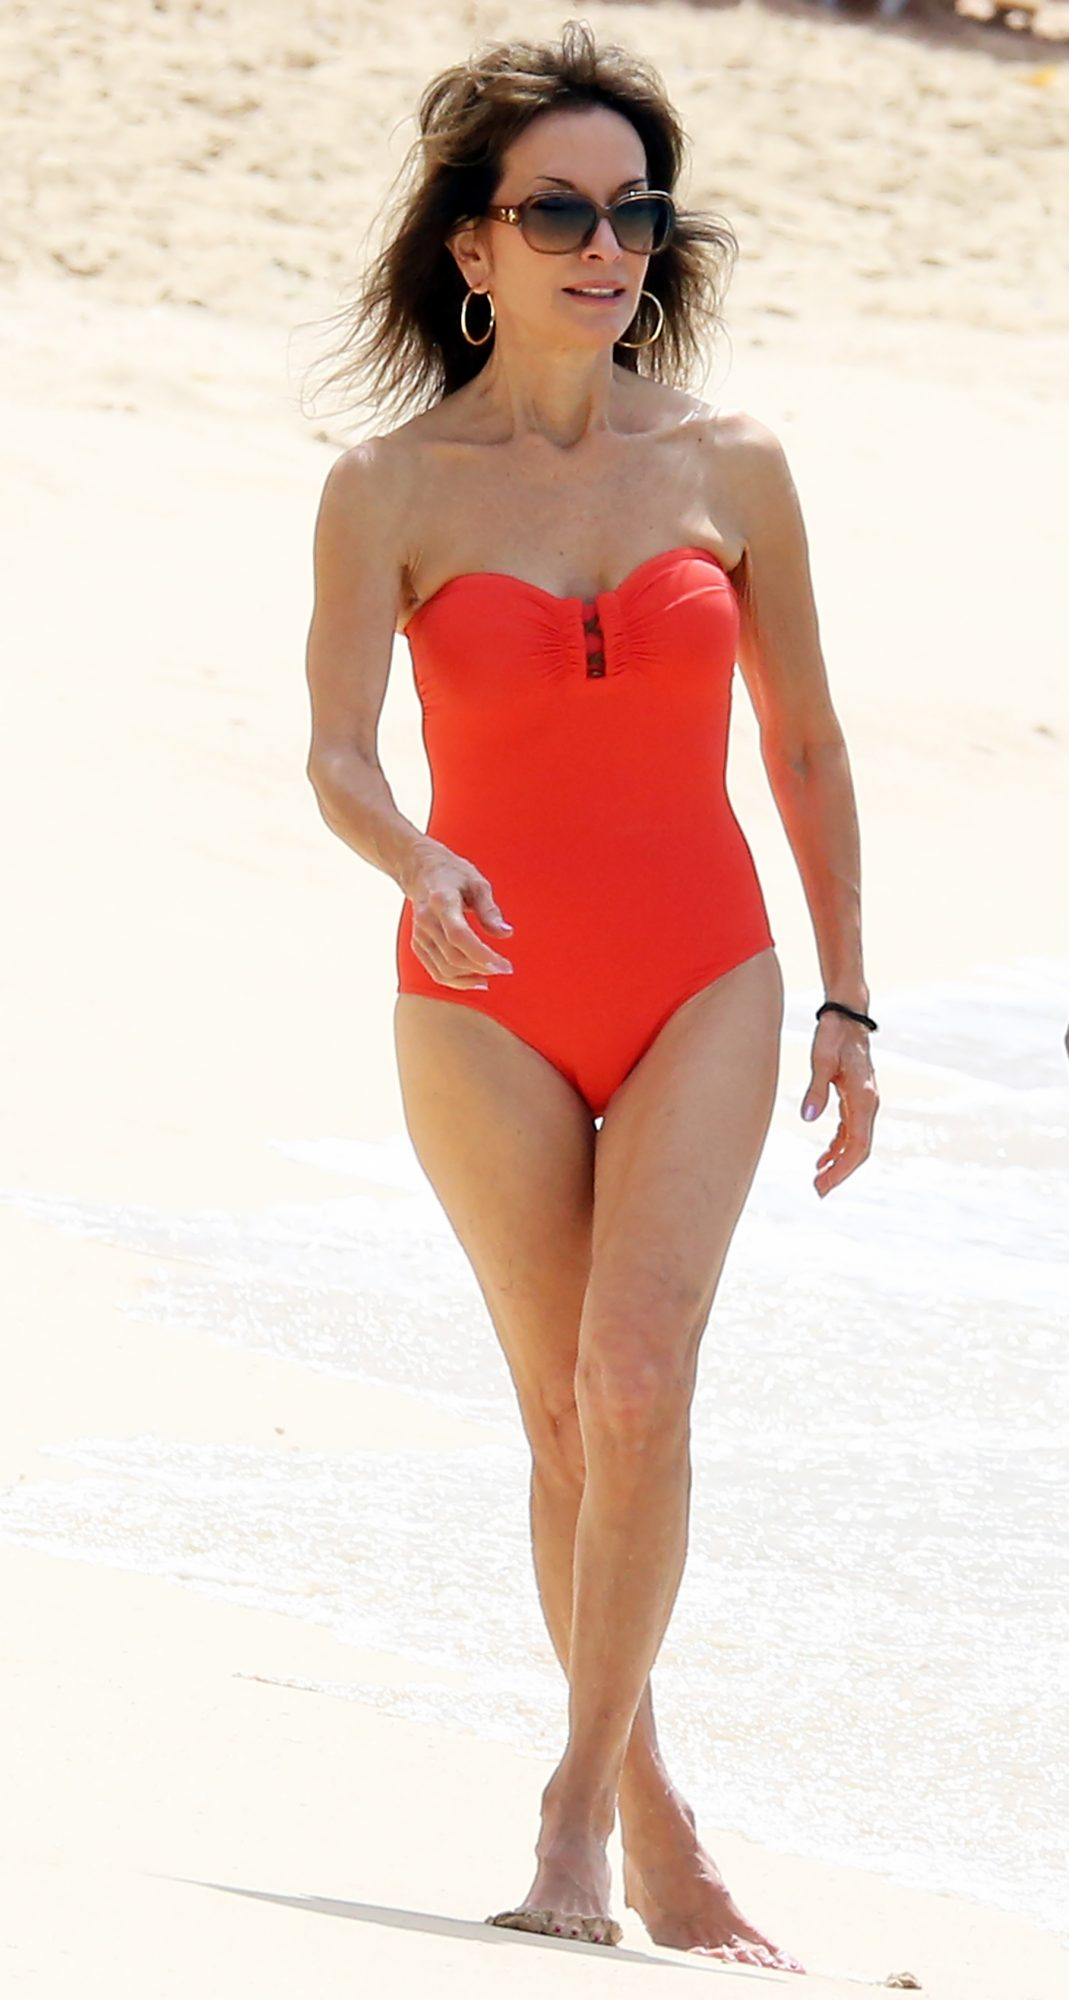 EXCLUSIVE: Actress Susan Lucci is pictured at the beach with husband Helmut Huber in Barbados.